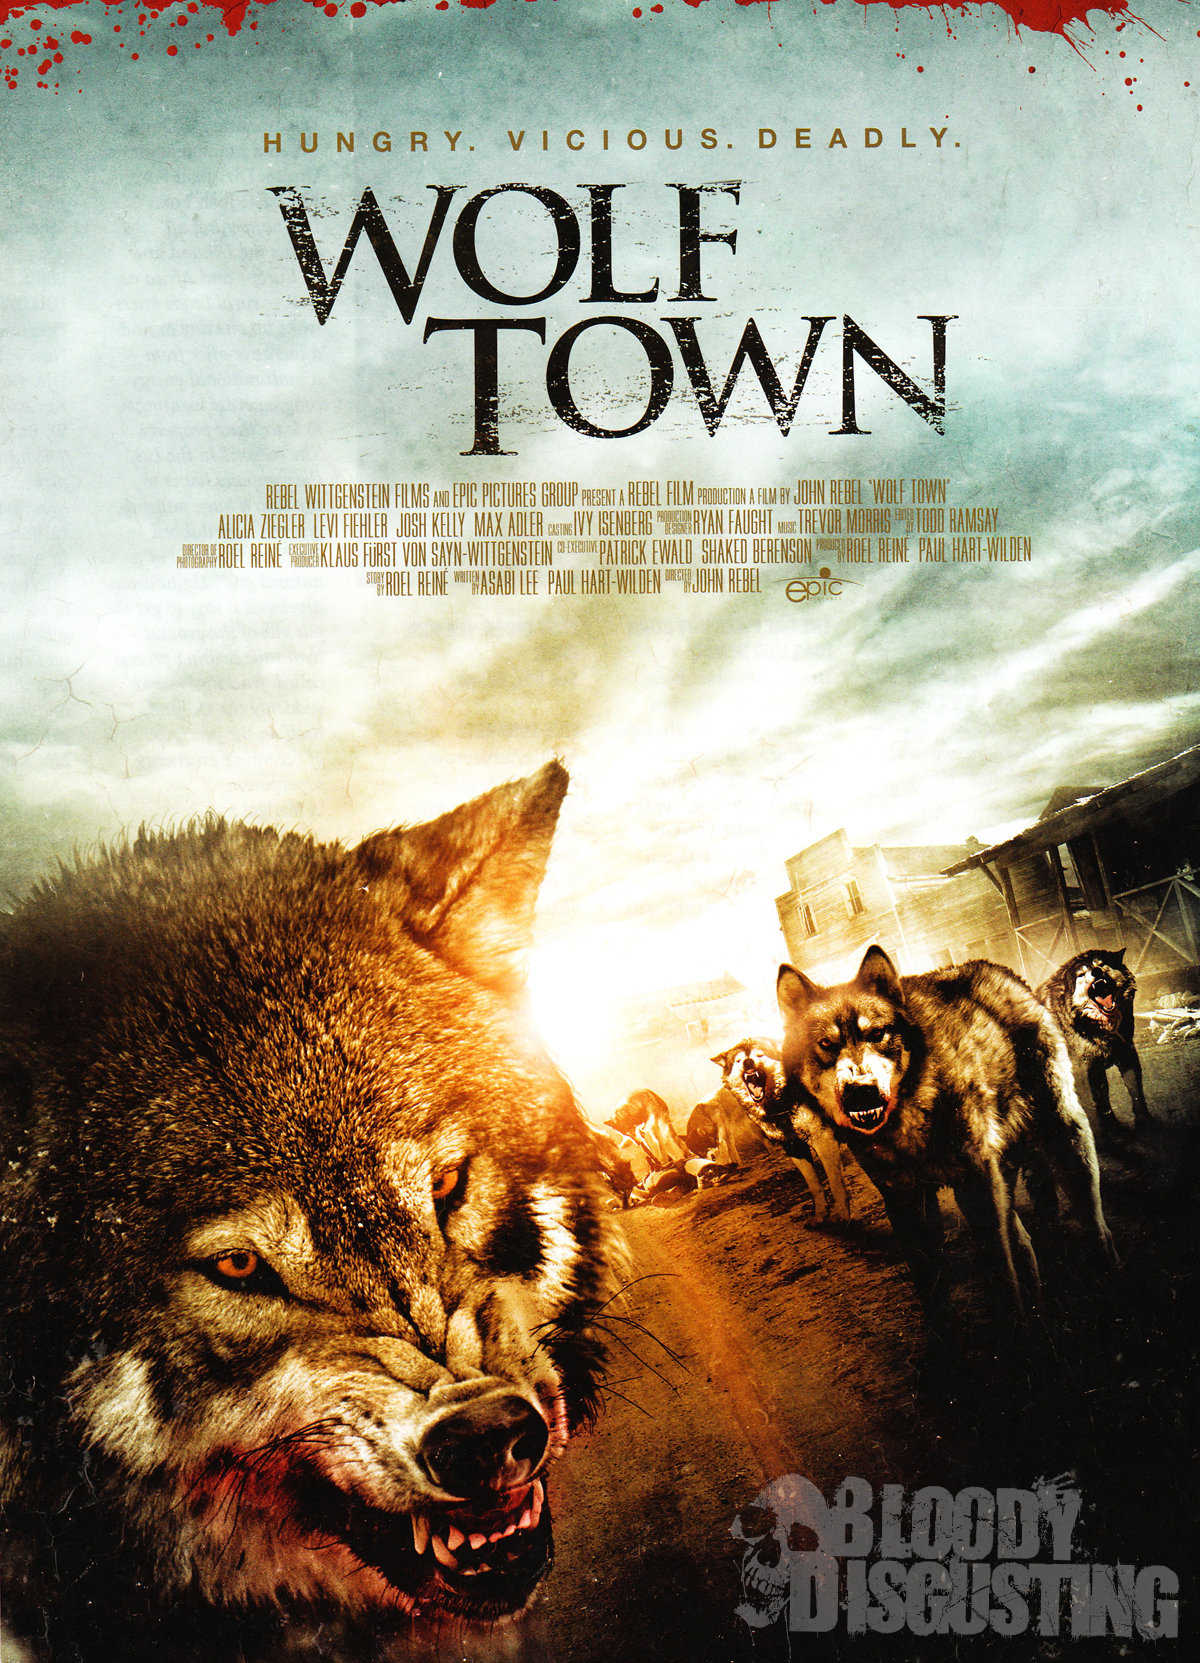 Wolf Town 2011 Dual Audio Hindi 720p HDRip ESub 950MB Free Download